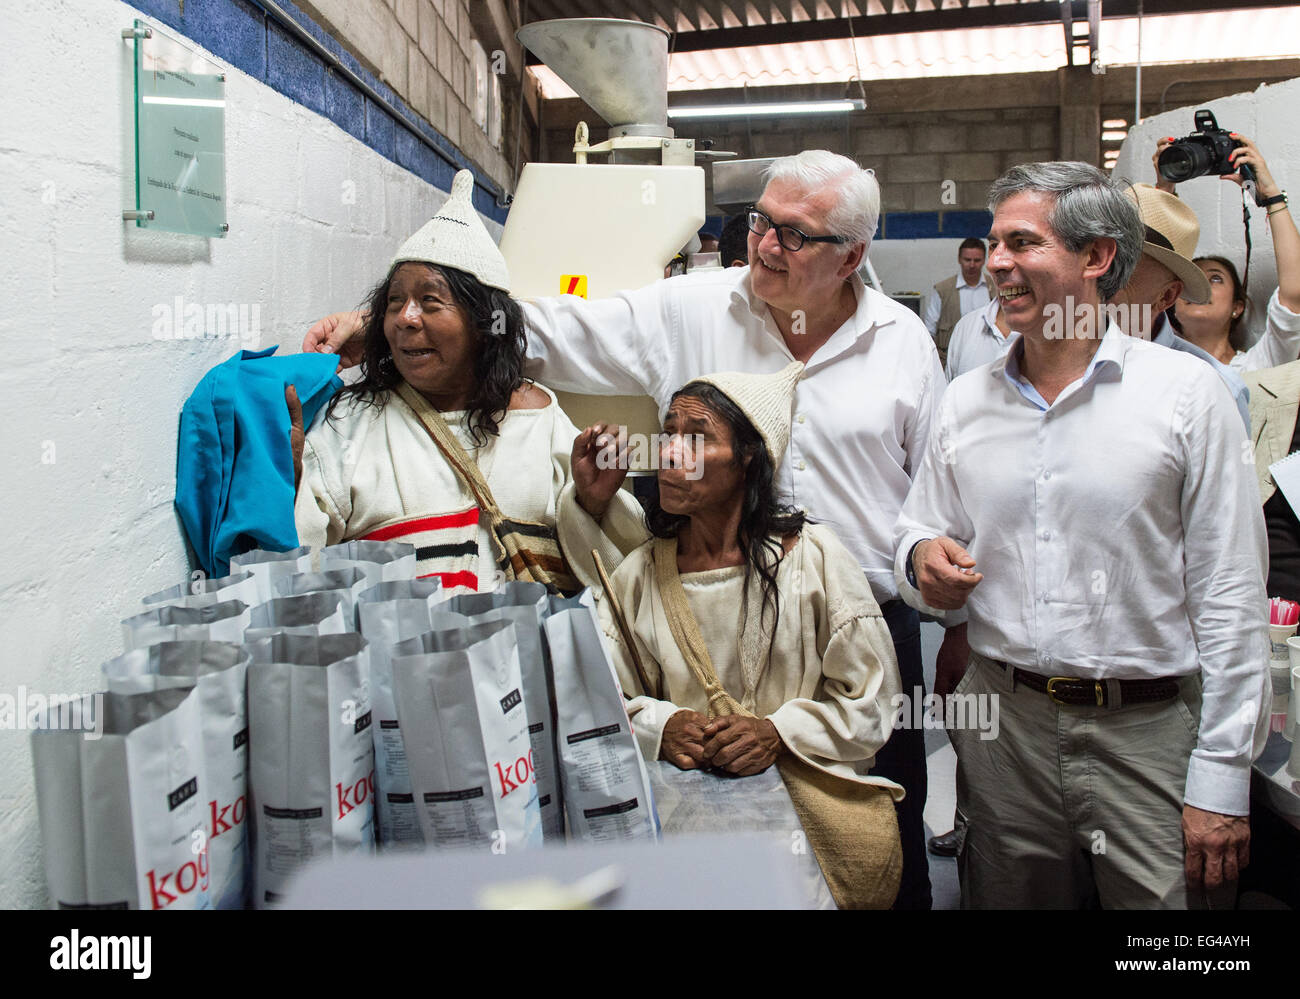 Mingueo, Colombia. 15th Feb, 2015. German Foreign Minister Frank-Walter Steinmeier (SPD, 2nd R) stands next to Colombian - Stock Image